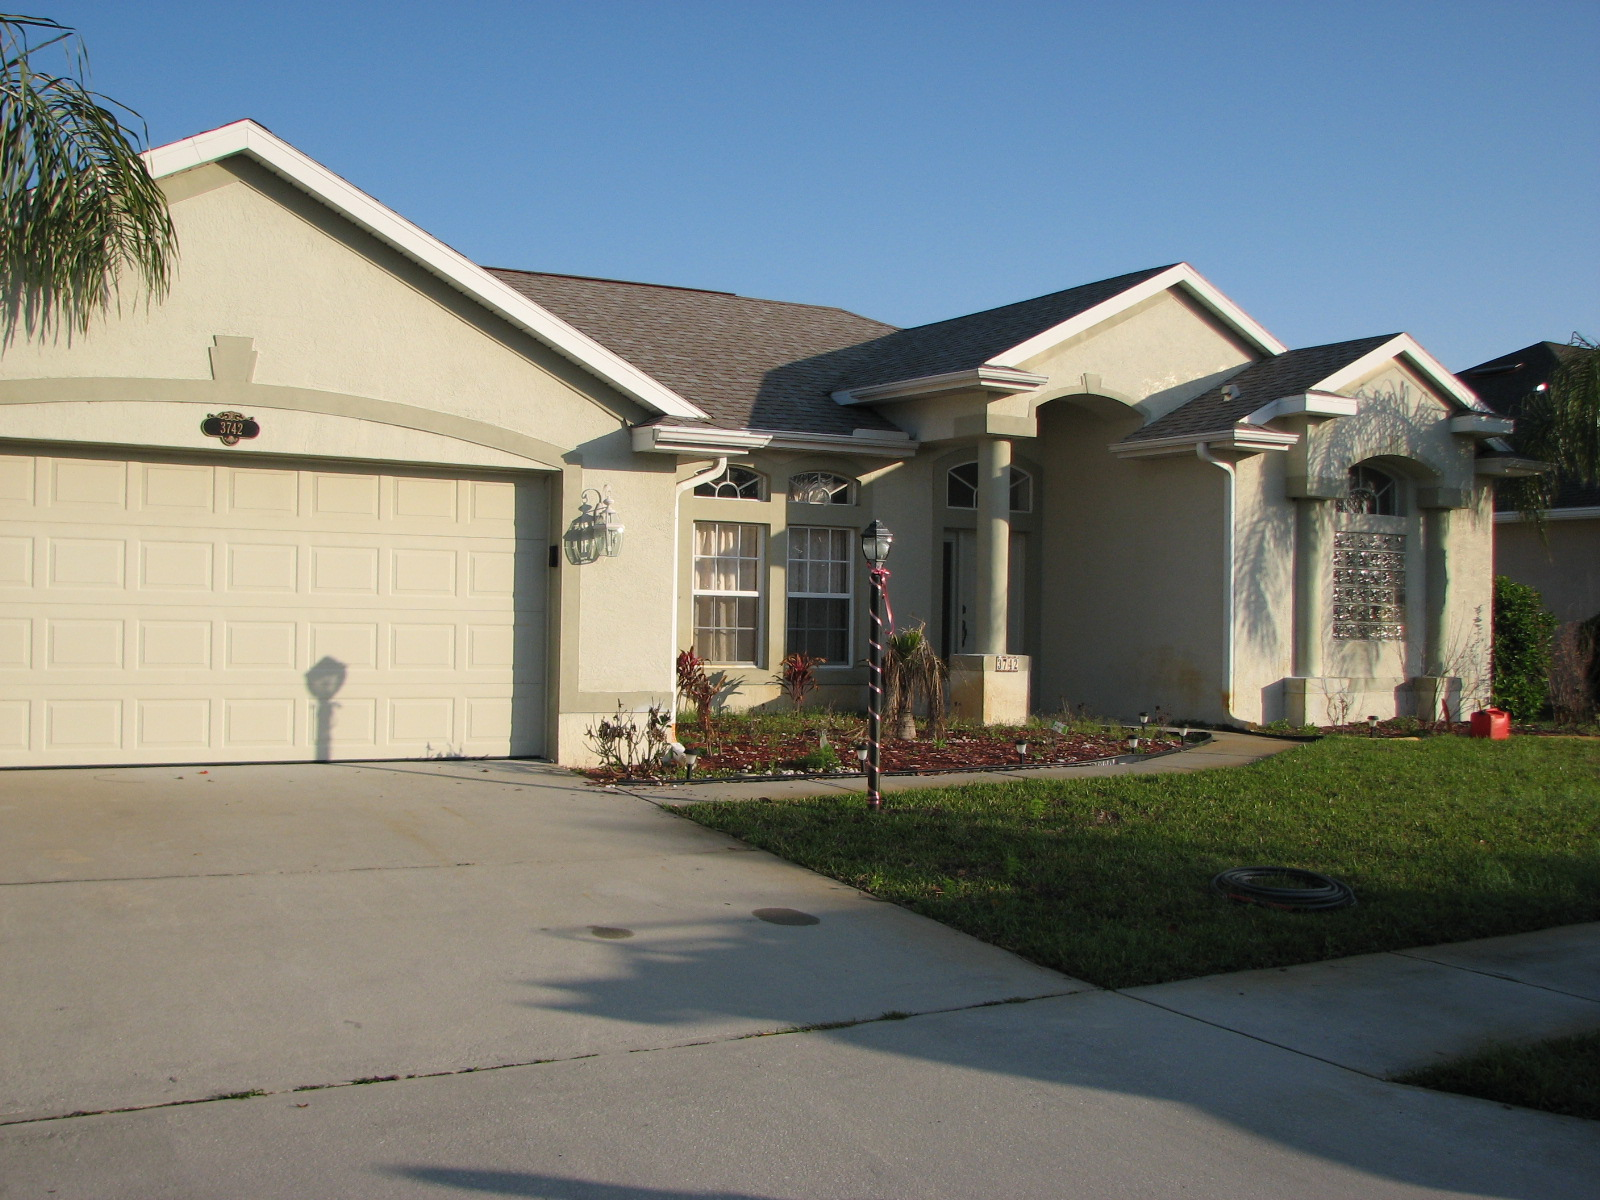 Exterior painting melbourne florida stucco cracks dingy - Painting a stucco house exterior ...